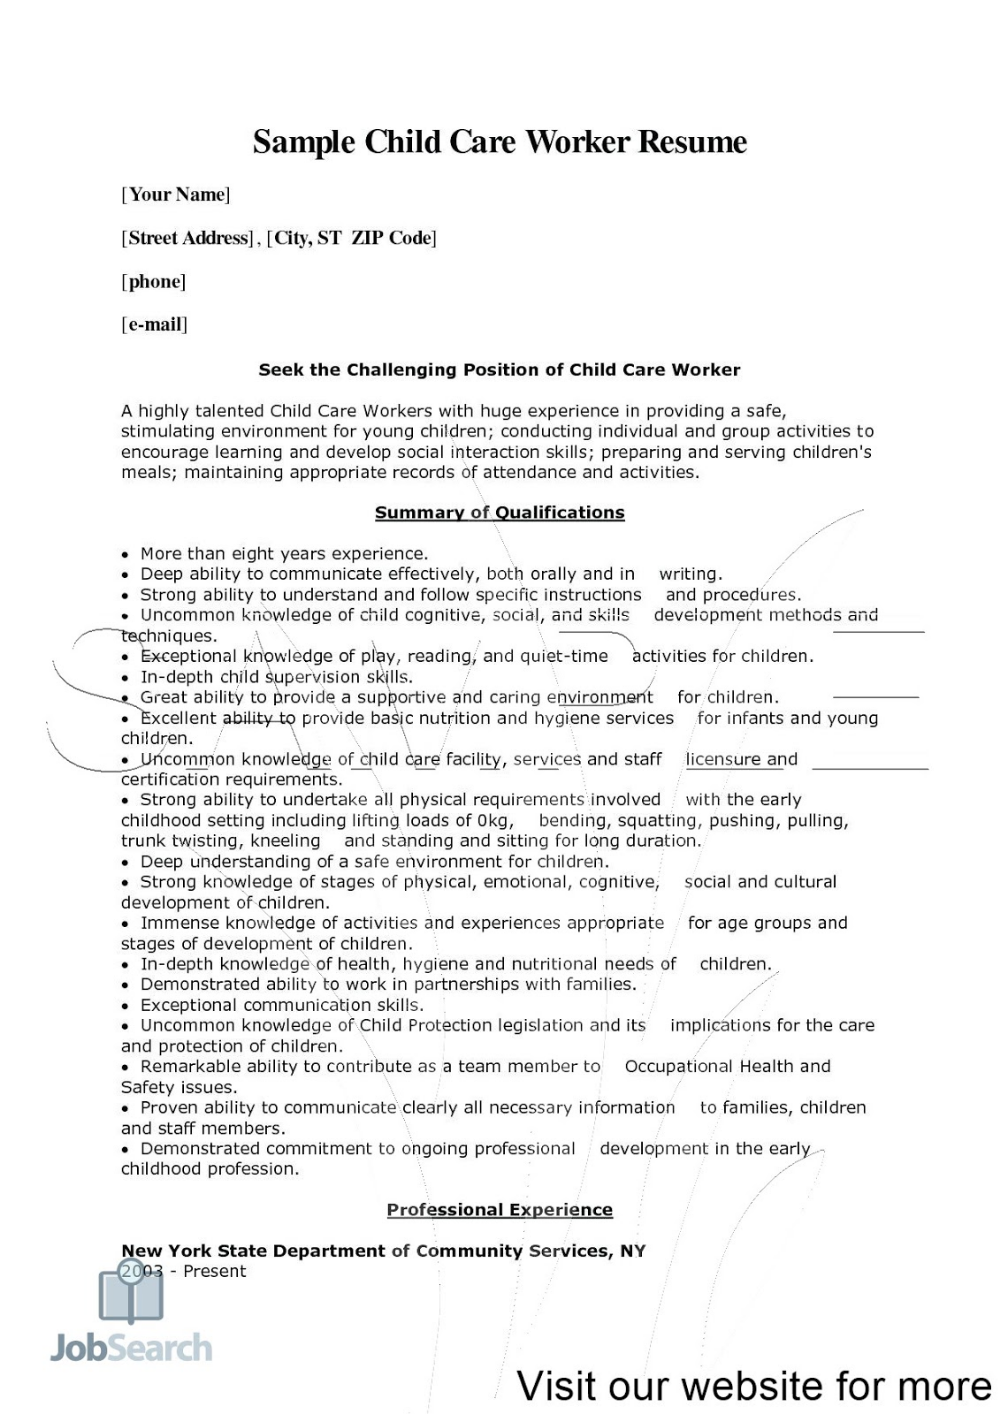 software quality assurance resume examples 2020 software